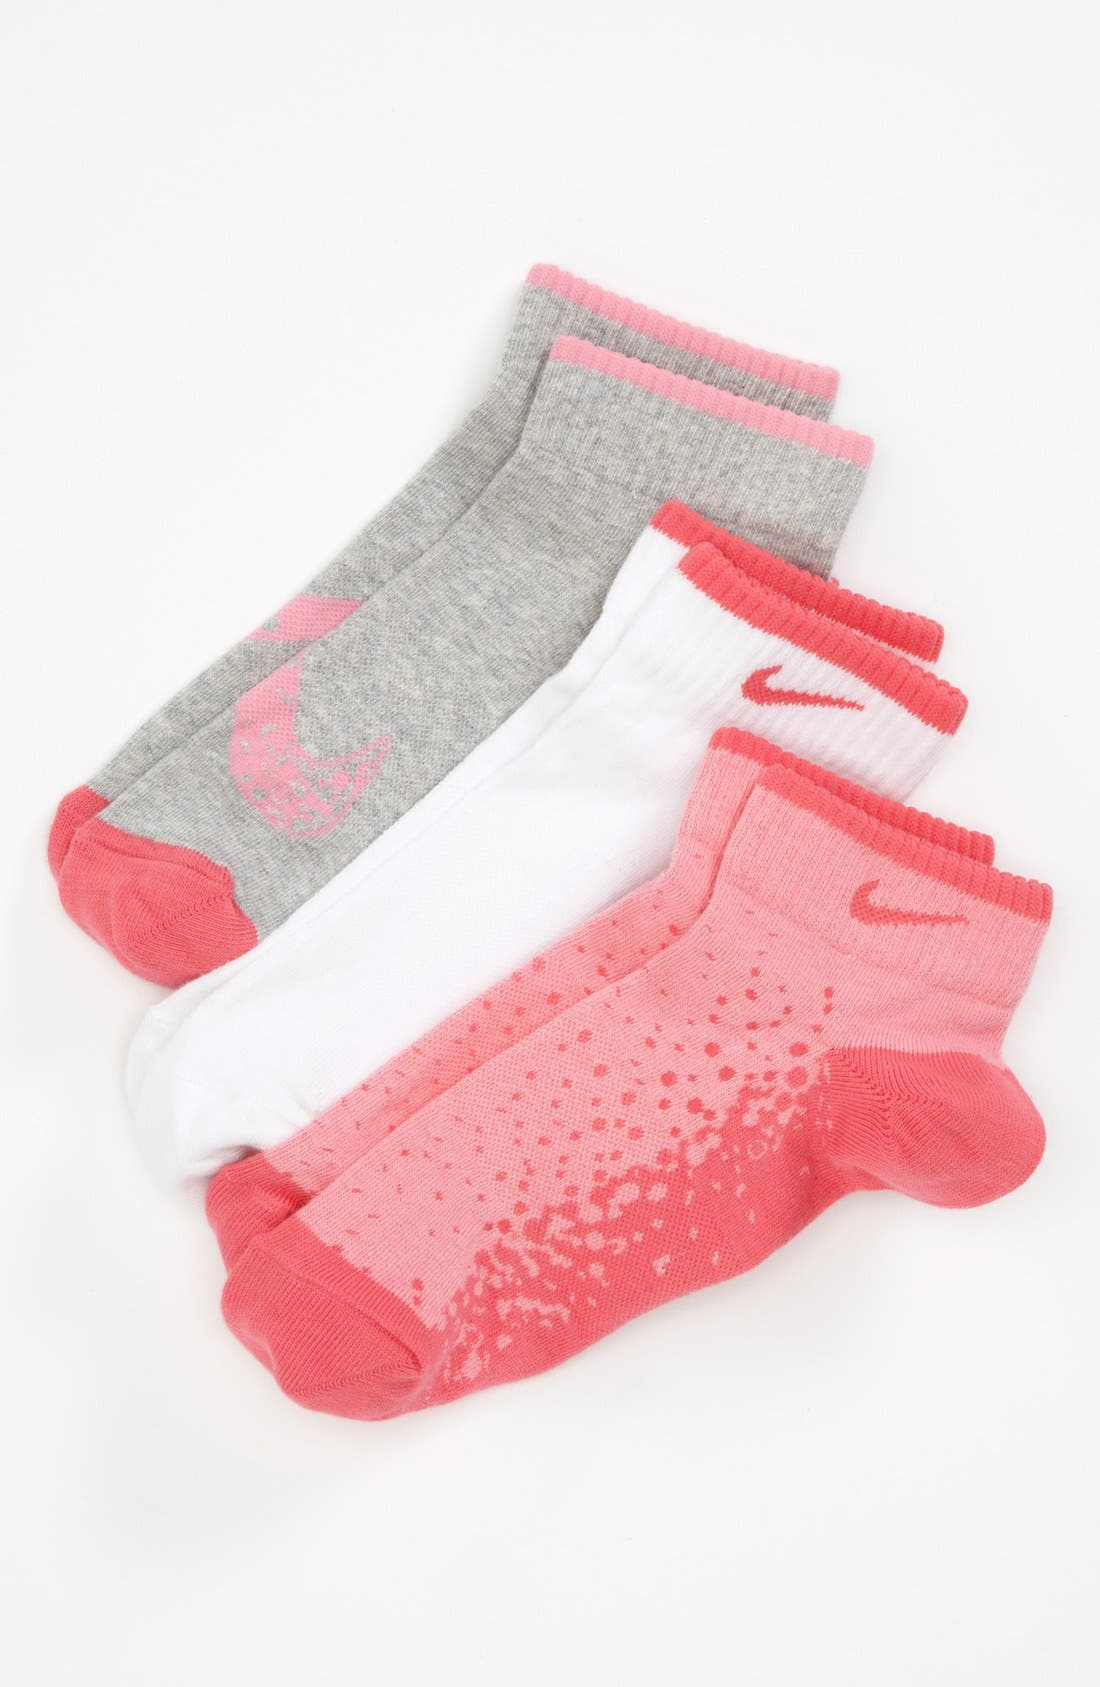 Alternate Image 1 Selected - Nike 'Graphic' Low Cut Socks (3-Pack) (Big Girls) (Online Only)